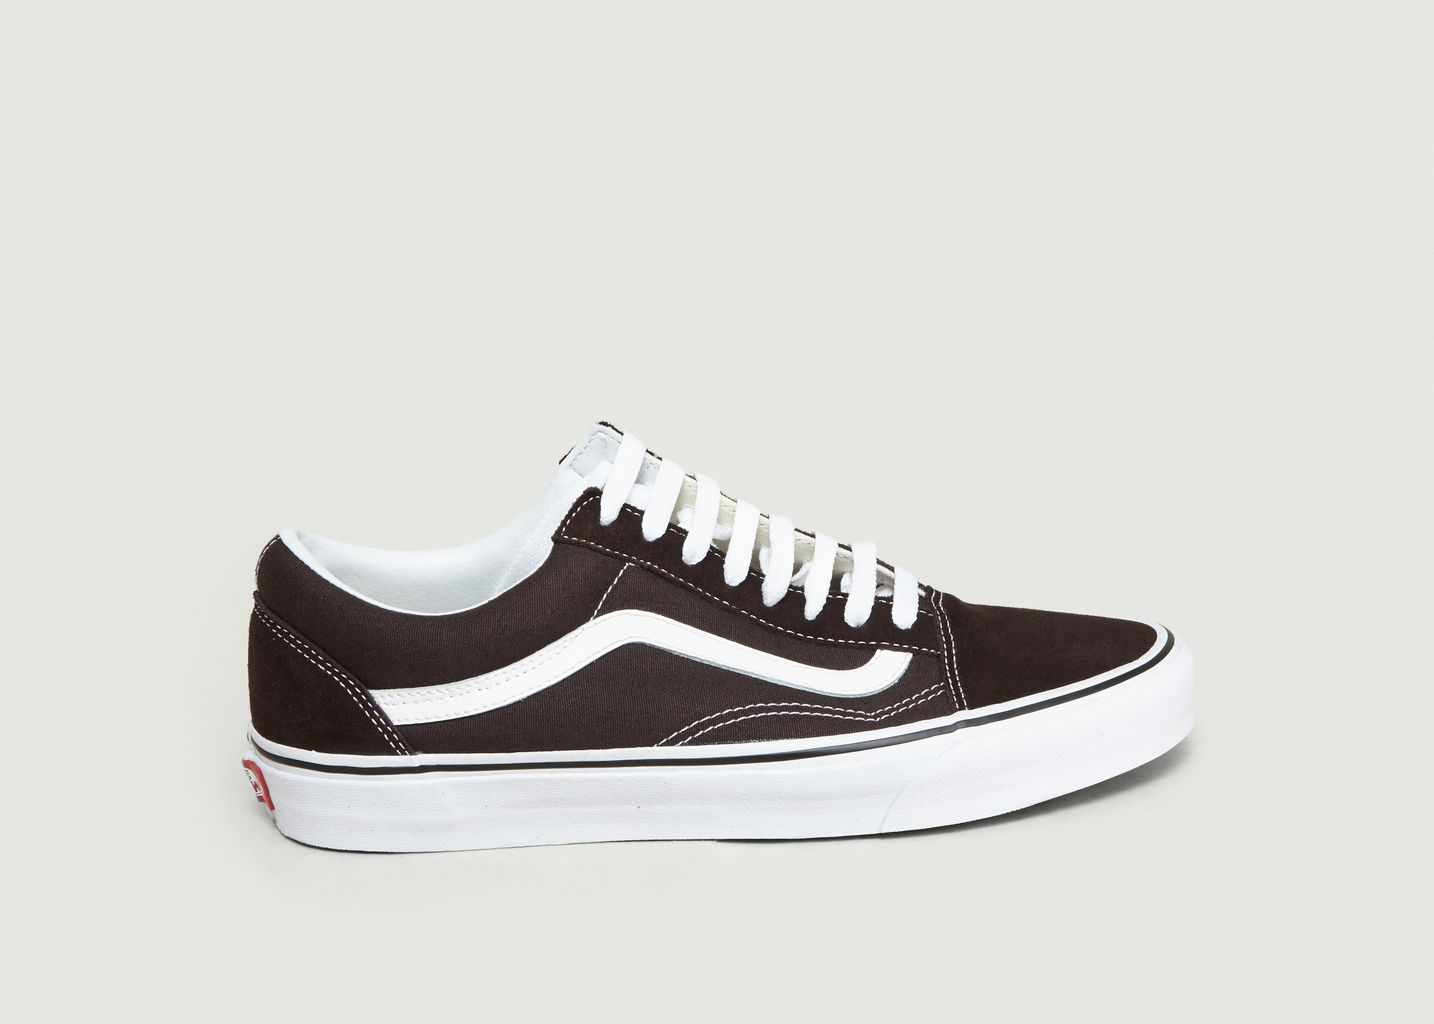 Daim Soldes Toile Sneakers Theory Skool Et En Chocolat Old Color SFw6EqCxw